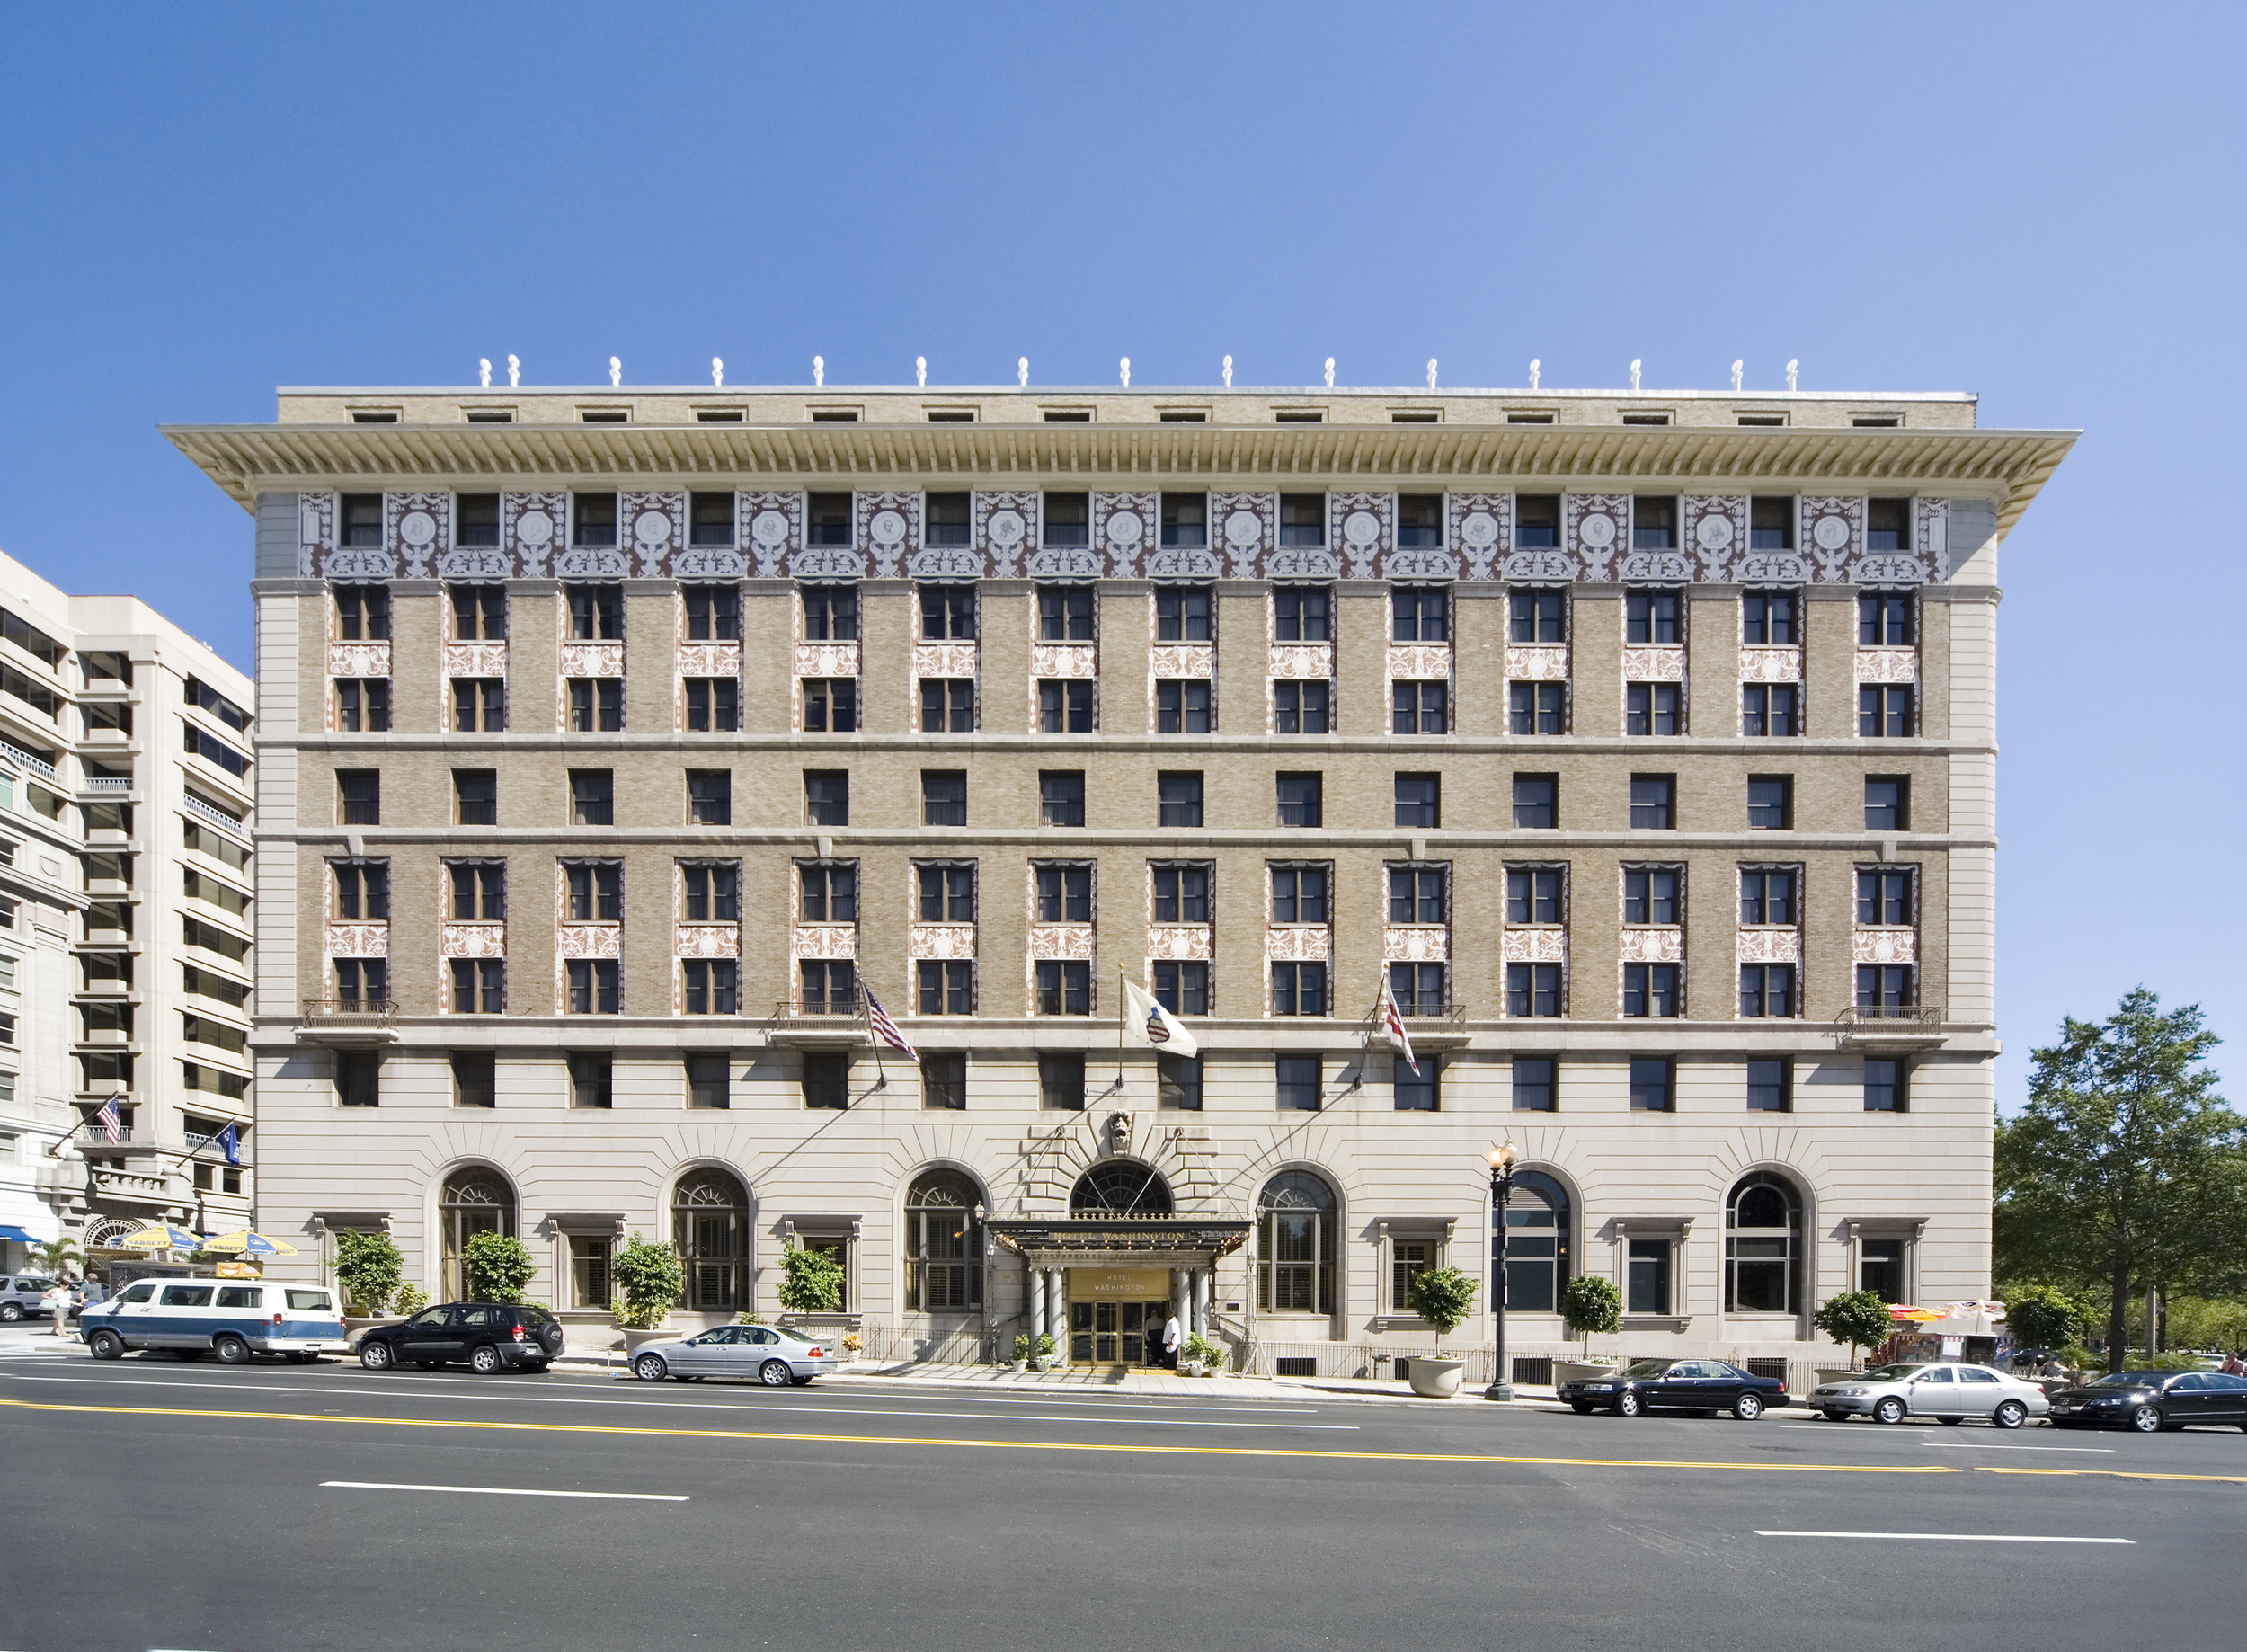 Hotel Washington, Washington DC 3.jpg